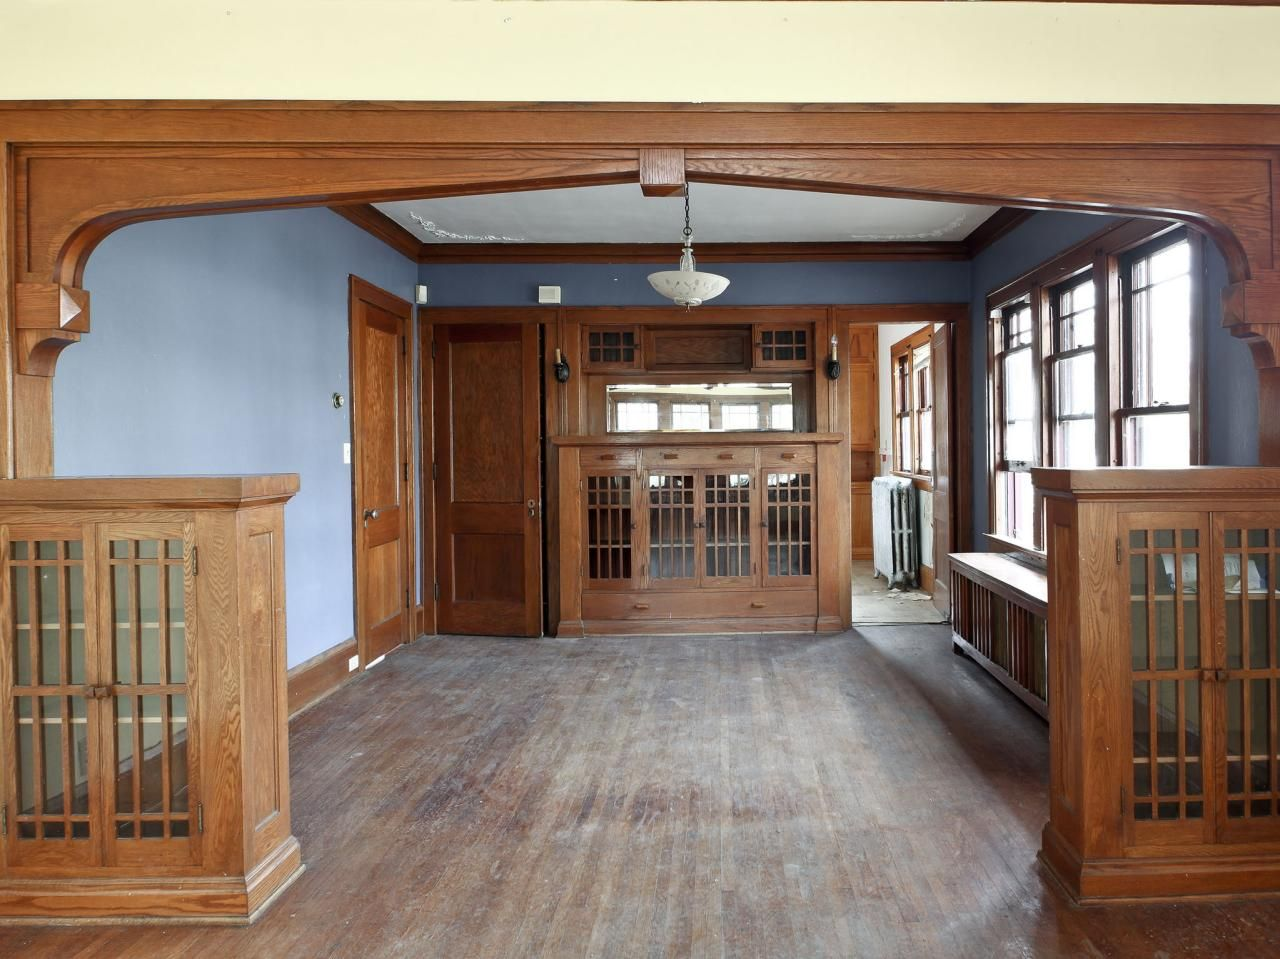 1920s Bungalow Restoration On Rehab Addict